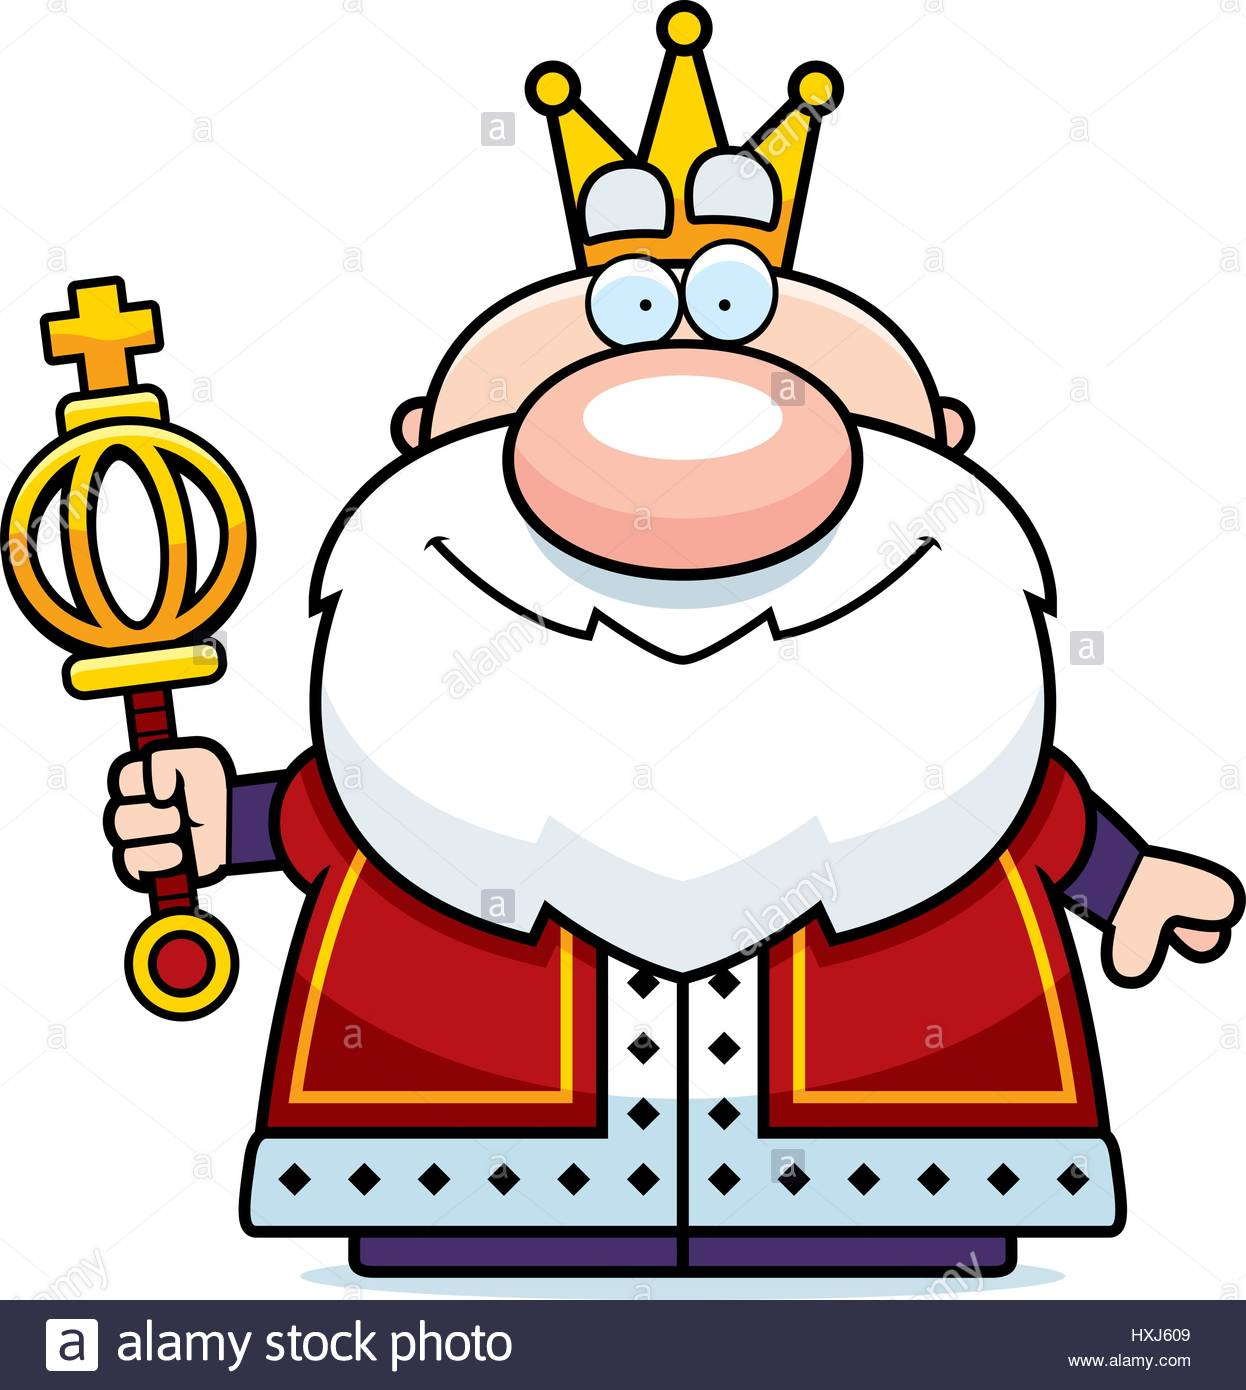 1246x1390 A Cartoon Illustration Of A King With A Scepter Stock Vector Art